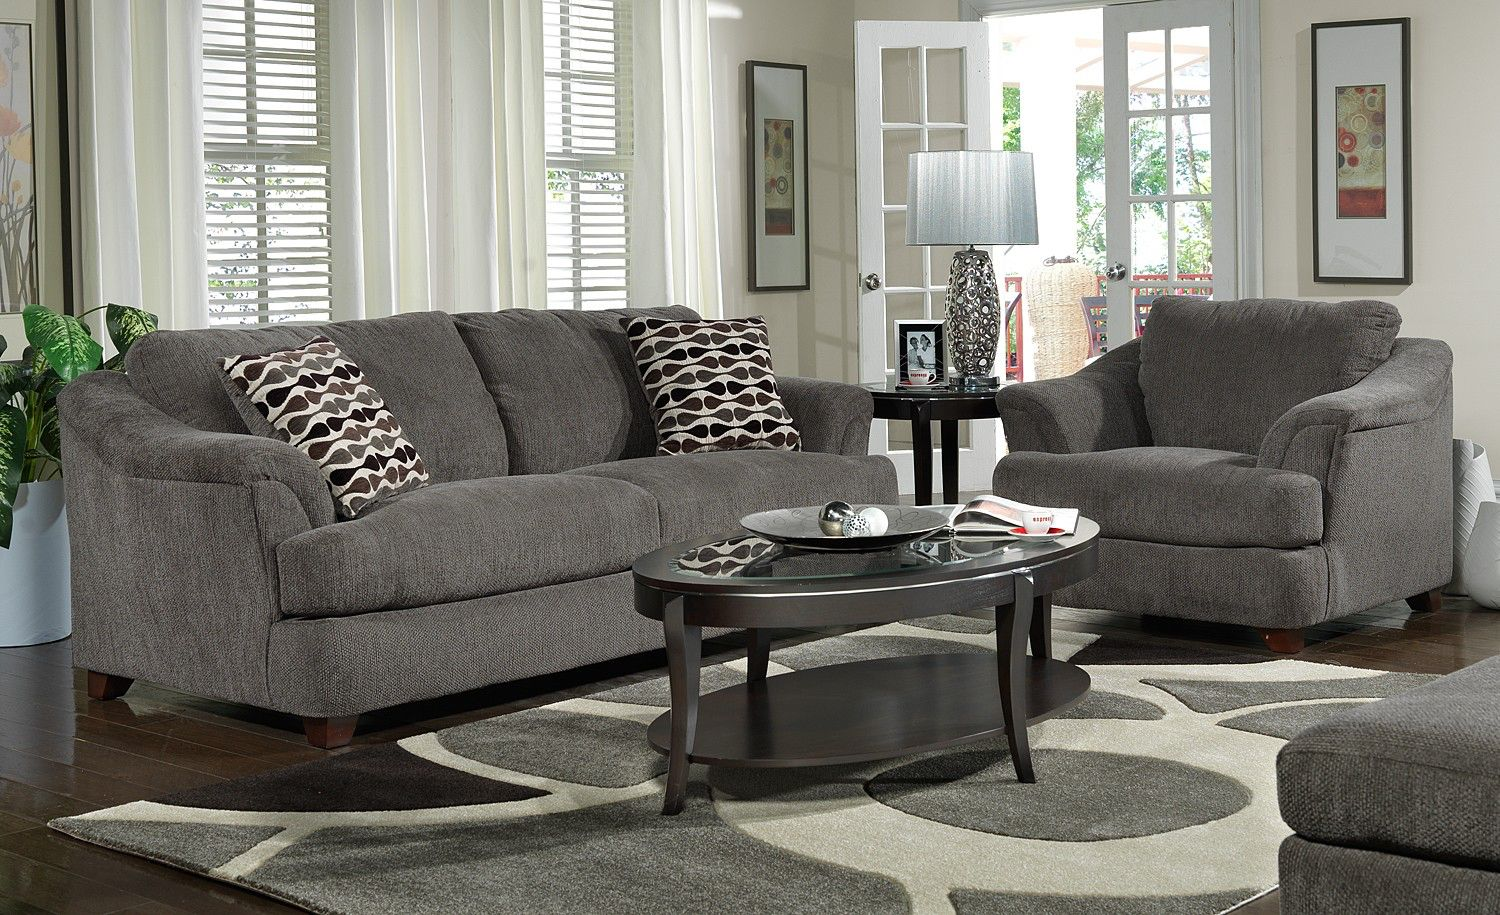 Living Room Grey Living Room Furniture Ideas image from httpmeddiodesign comwp contentuploads201412 contentuploads201412livingroom furniture grey living room ideas with cozy dark gray sofa and